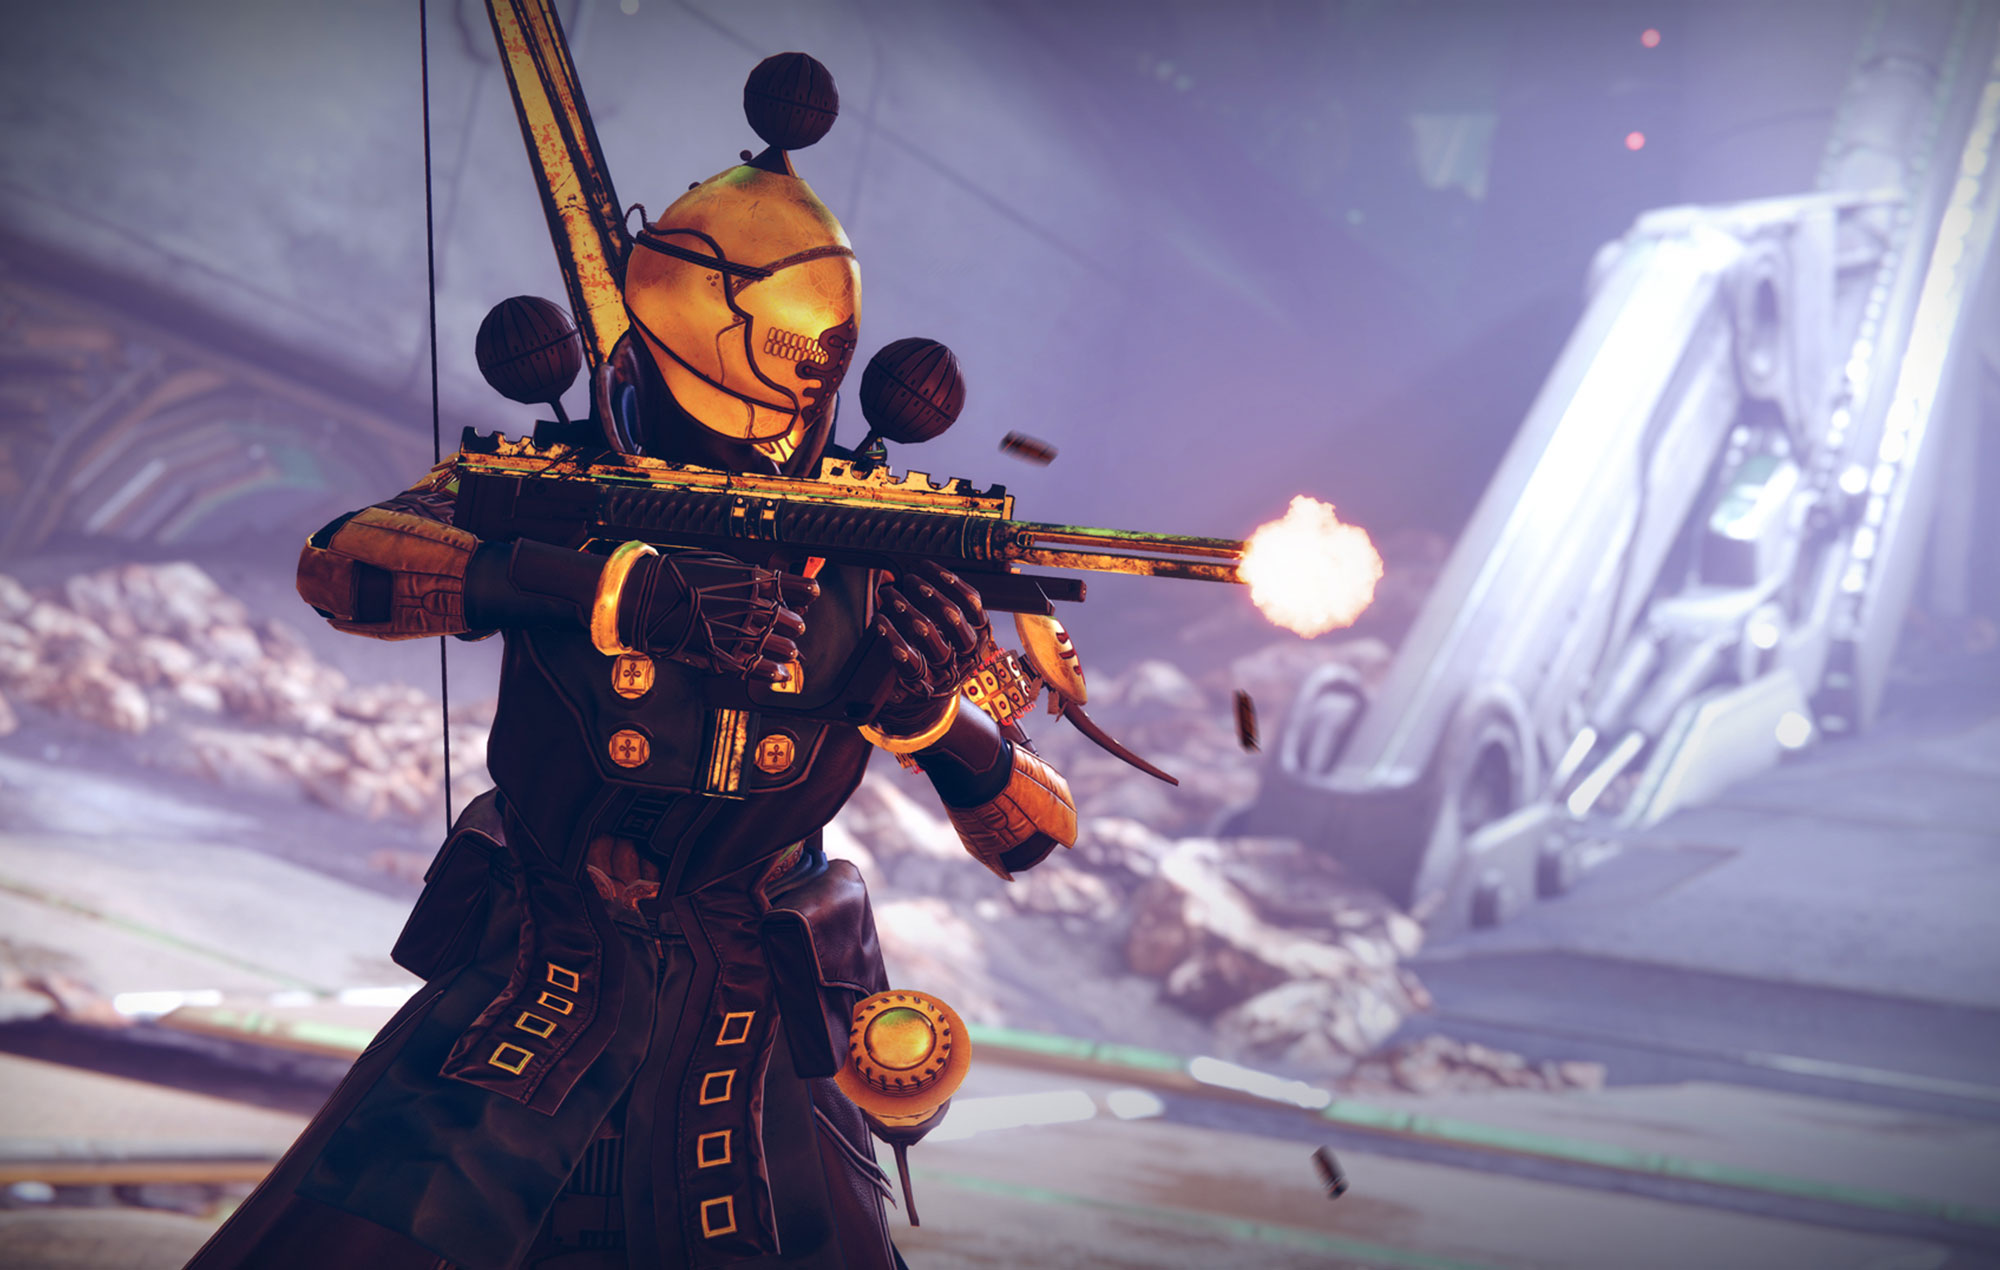 'The Witch Queen' expansion for 'Destiny 2' delayed until 2022 - NME